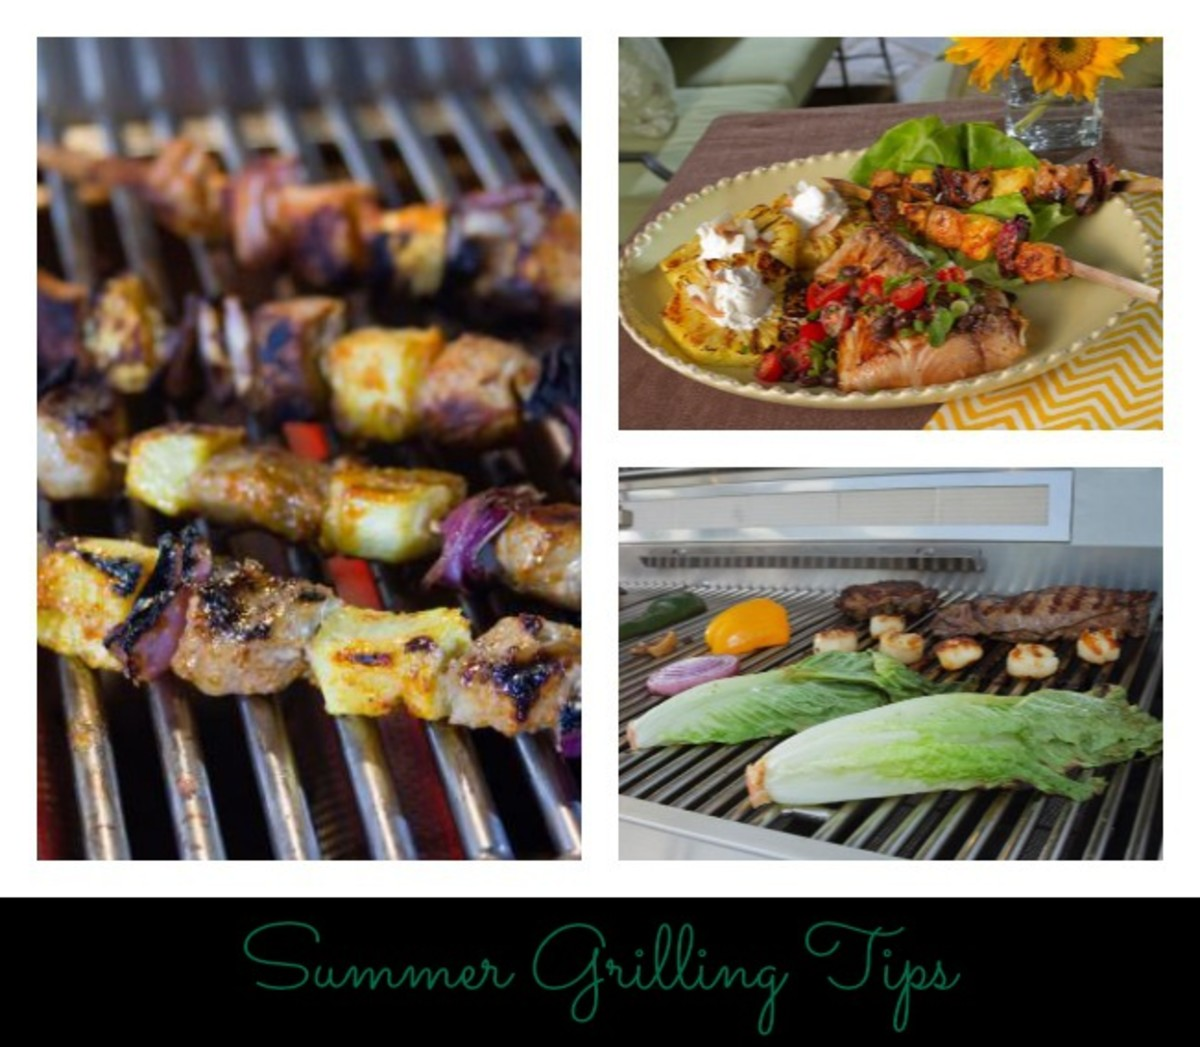 Summertime Grilling Recipes & Tips